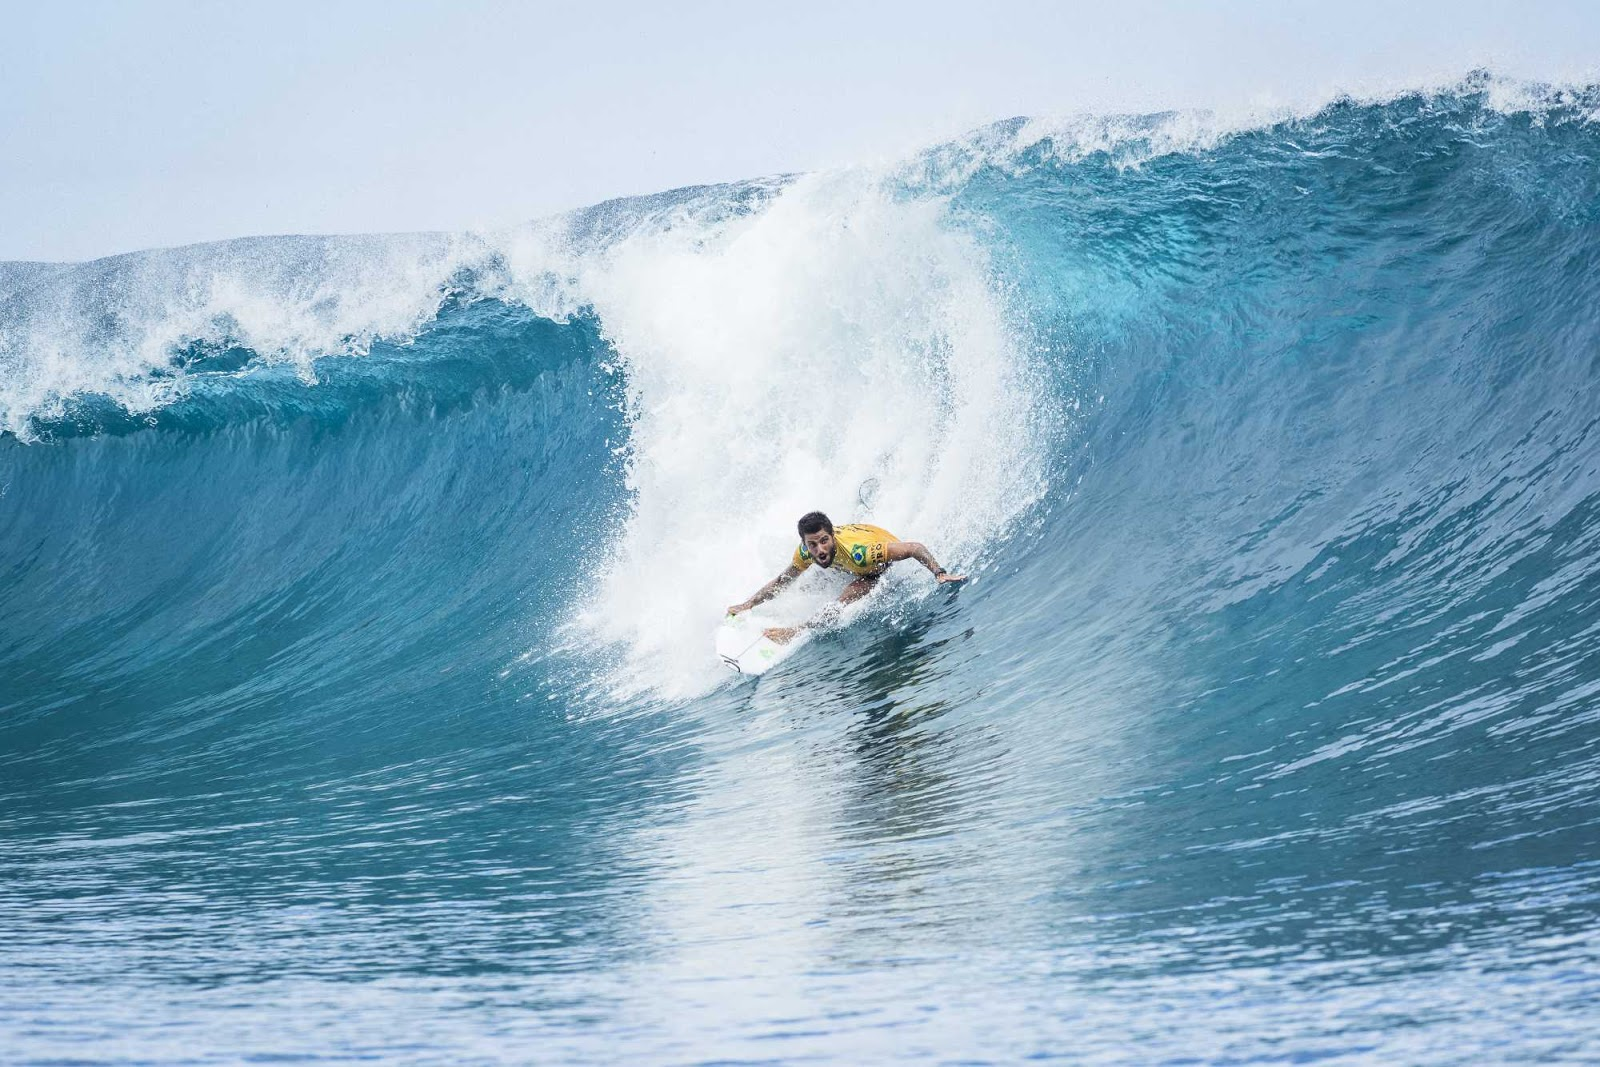 Day 1 Highlights Opening Day at Teahupo o